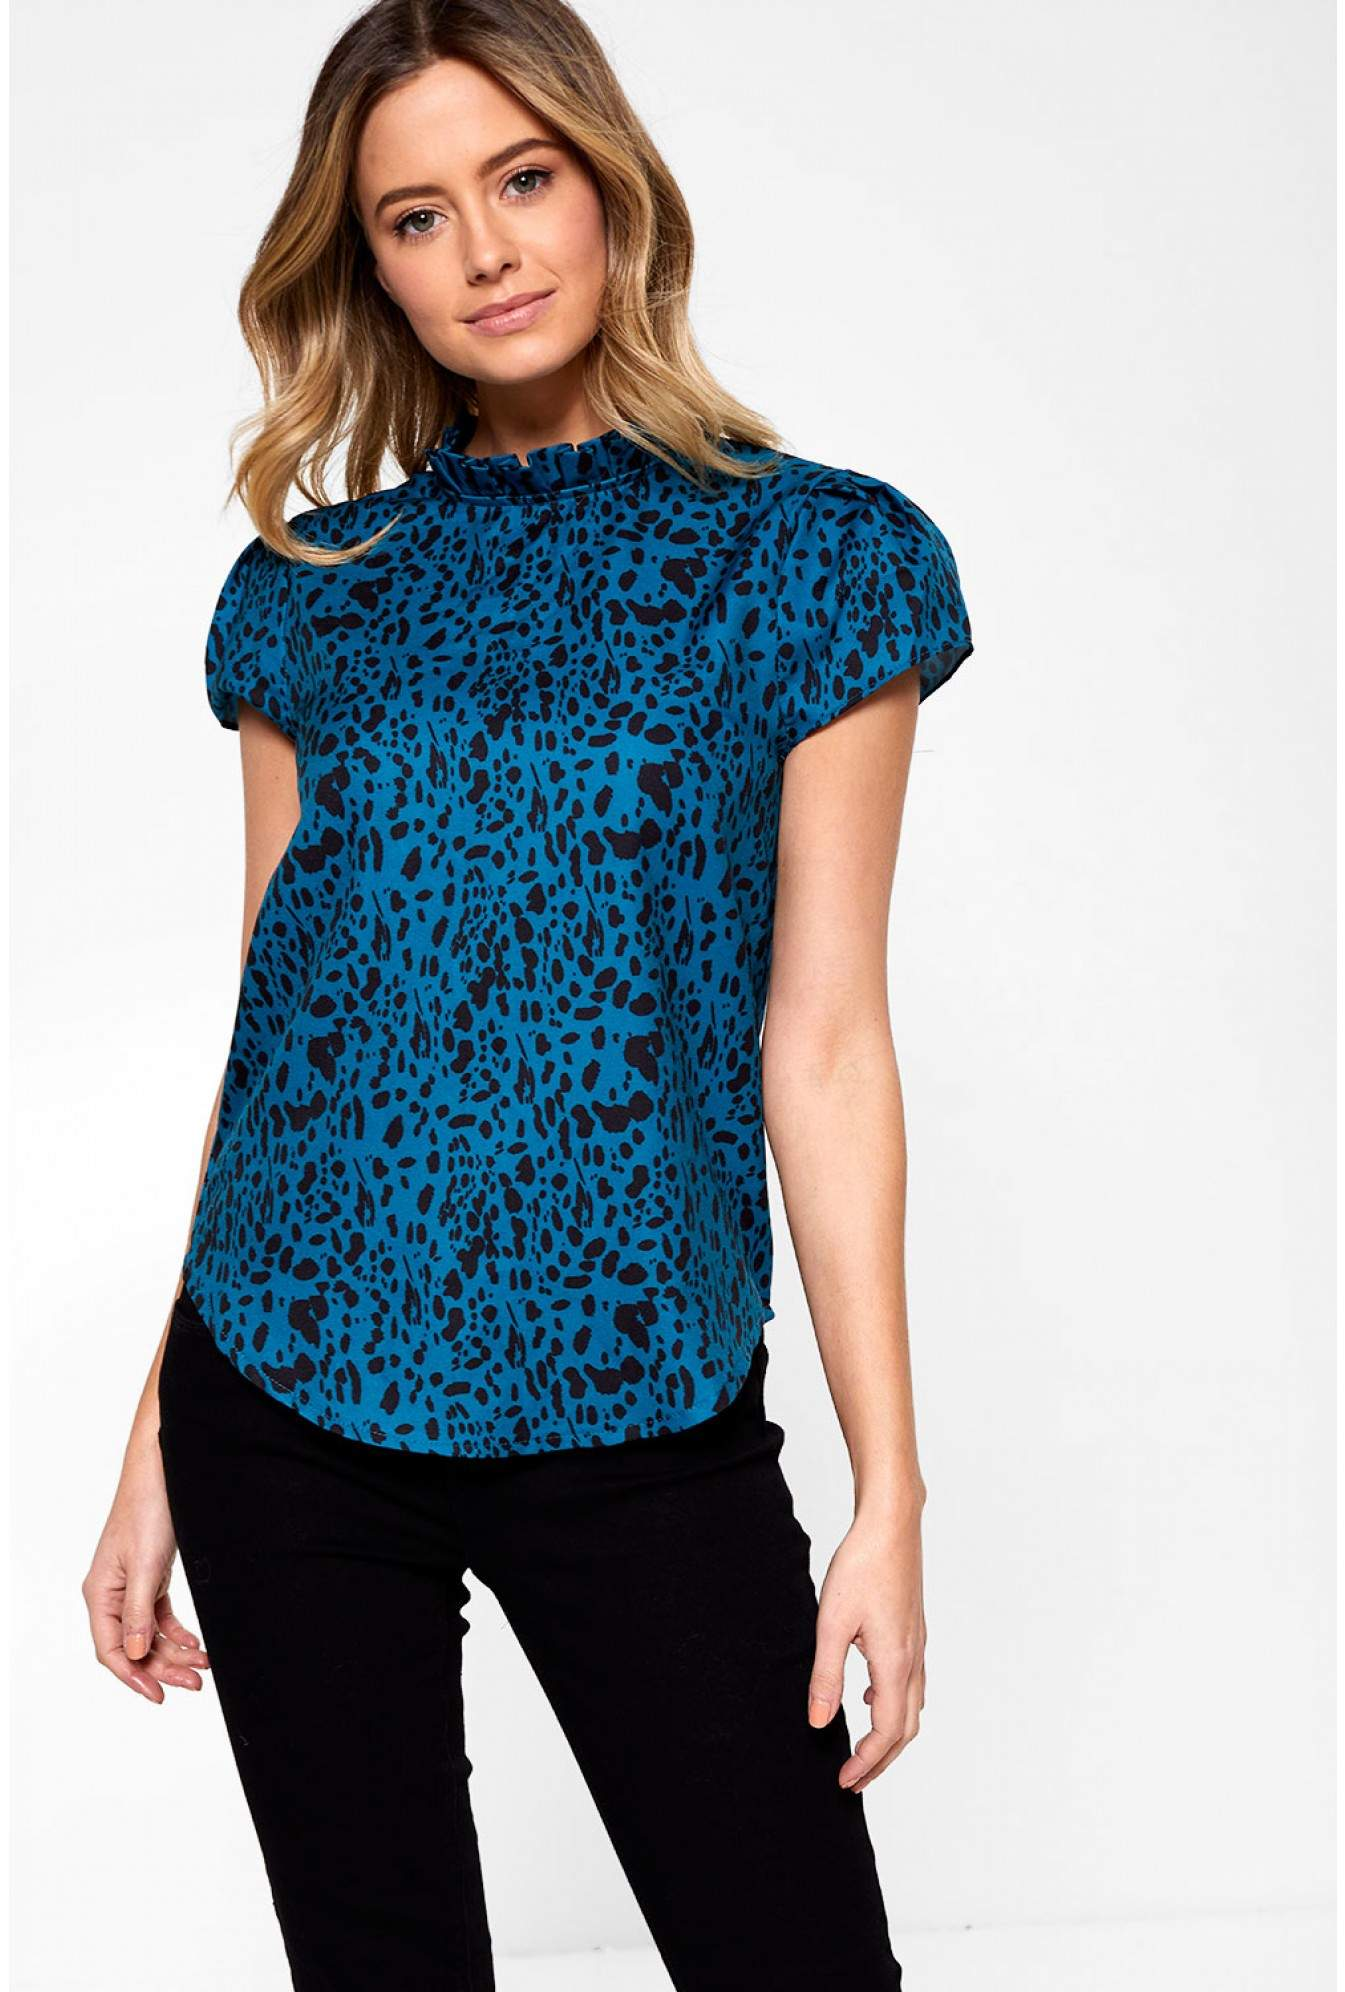 16ccdb26e26589 Marc Angelo Millie Top with Frill Neck in Teal Animal Print | iCLOTHING